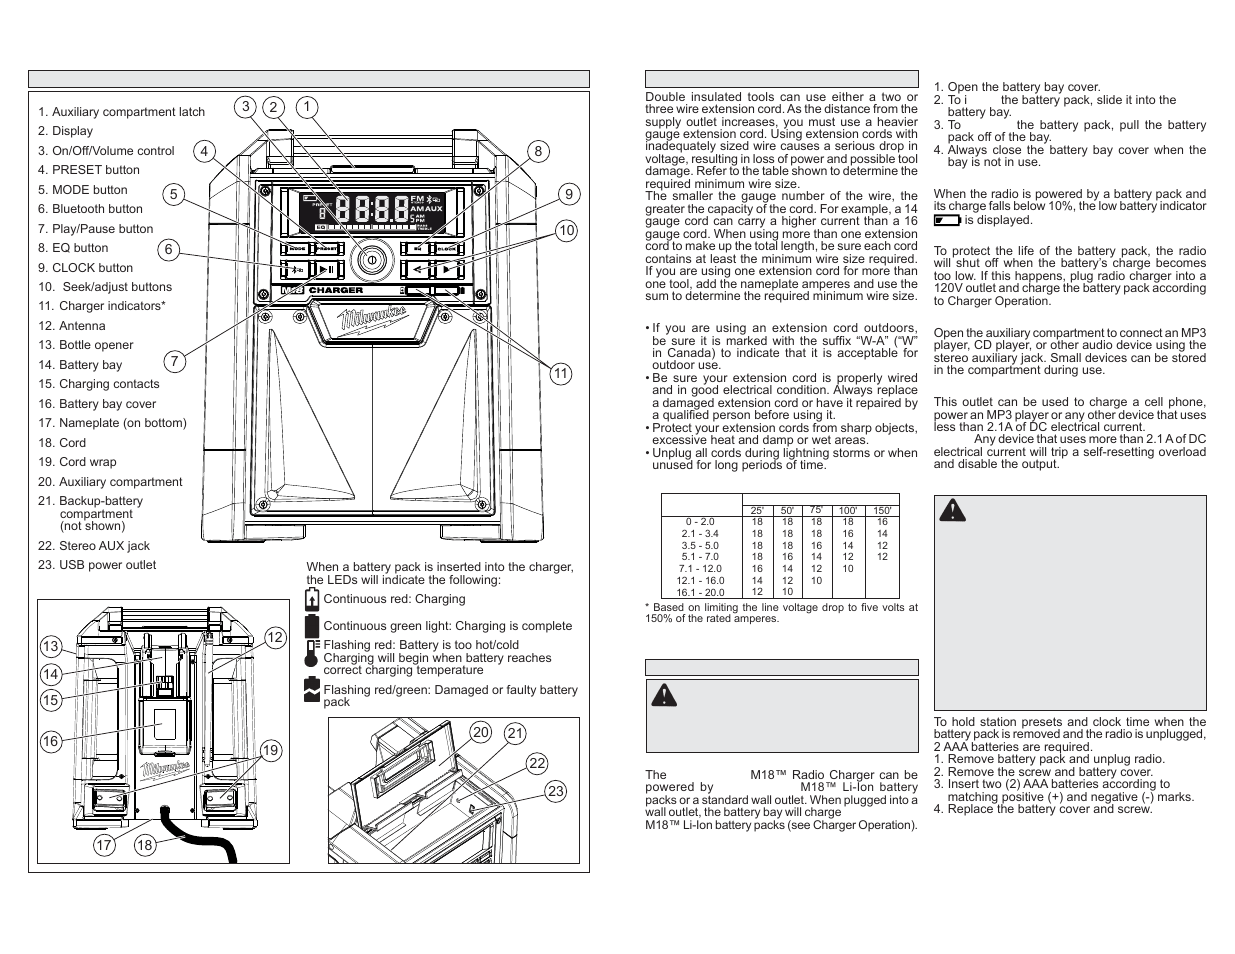 120v wiring diagram types of sand dunes milwaukee tool 2792-20 user manual | page 3 / 13